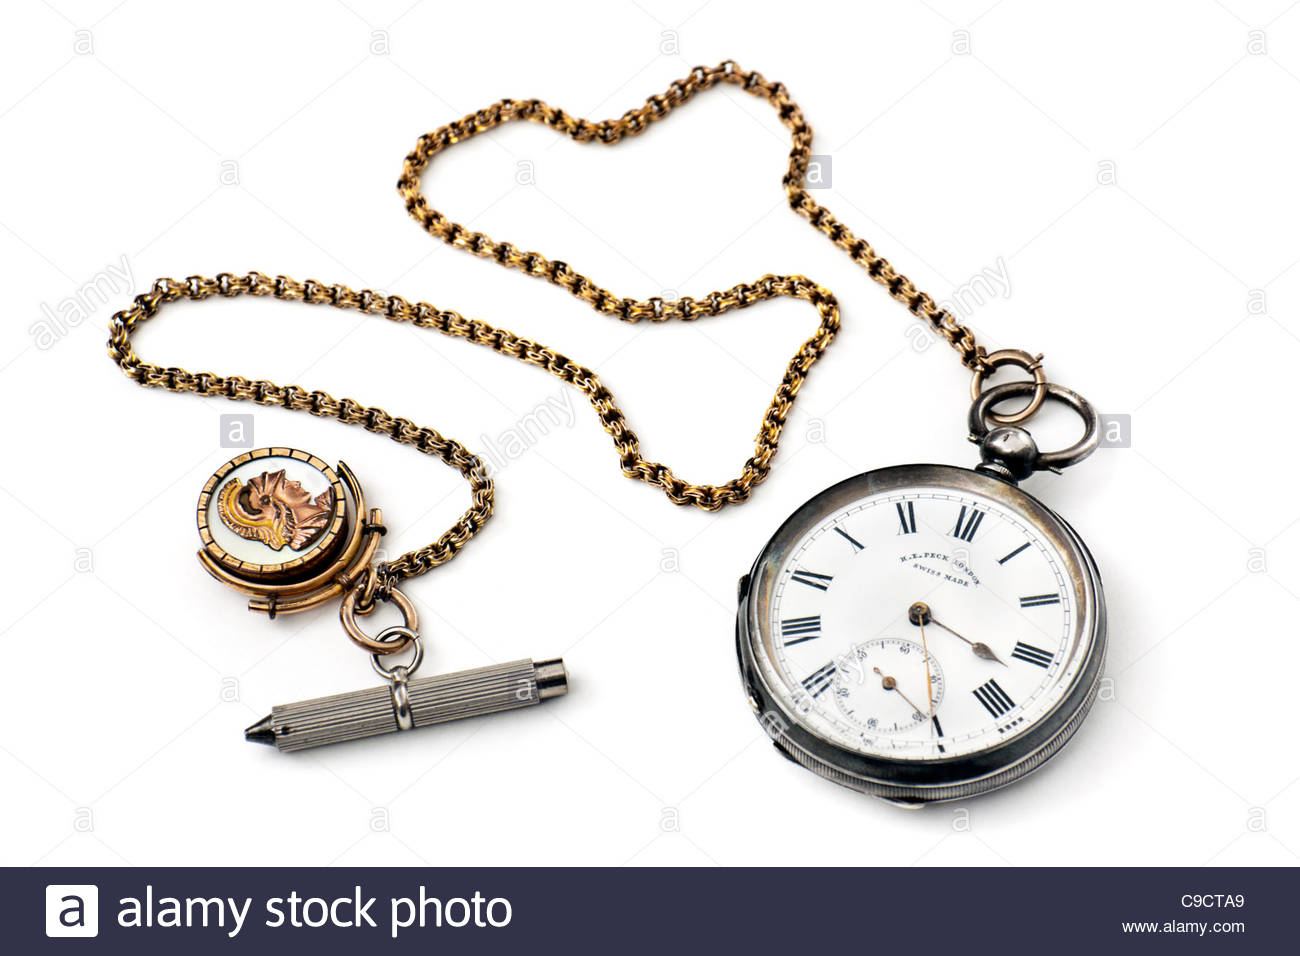 Antique Silver pocket watch by Henry Edward Peck (H.E. Peck) of London. - Stock Image